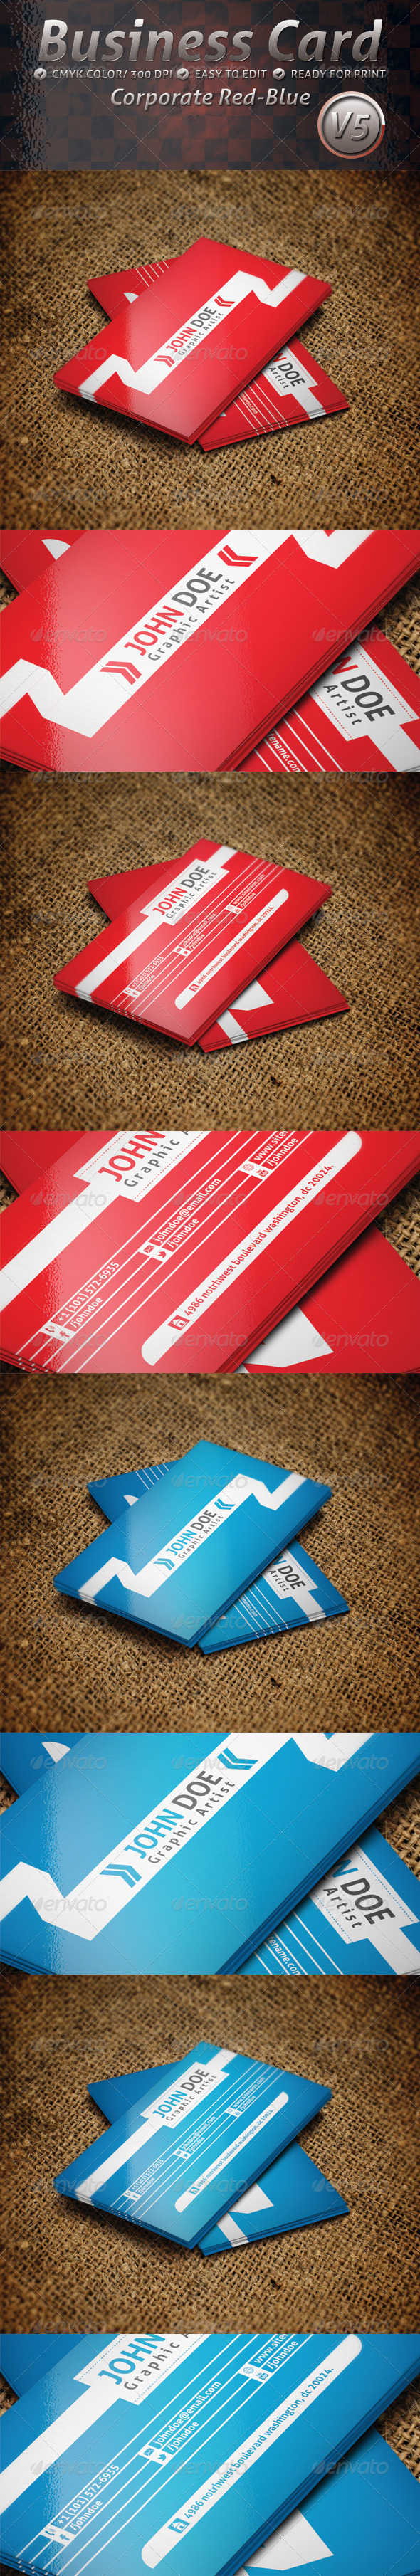 Business Card Corporate Red and Blue V5 - Corporate Business Cards